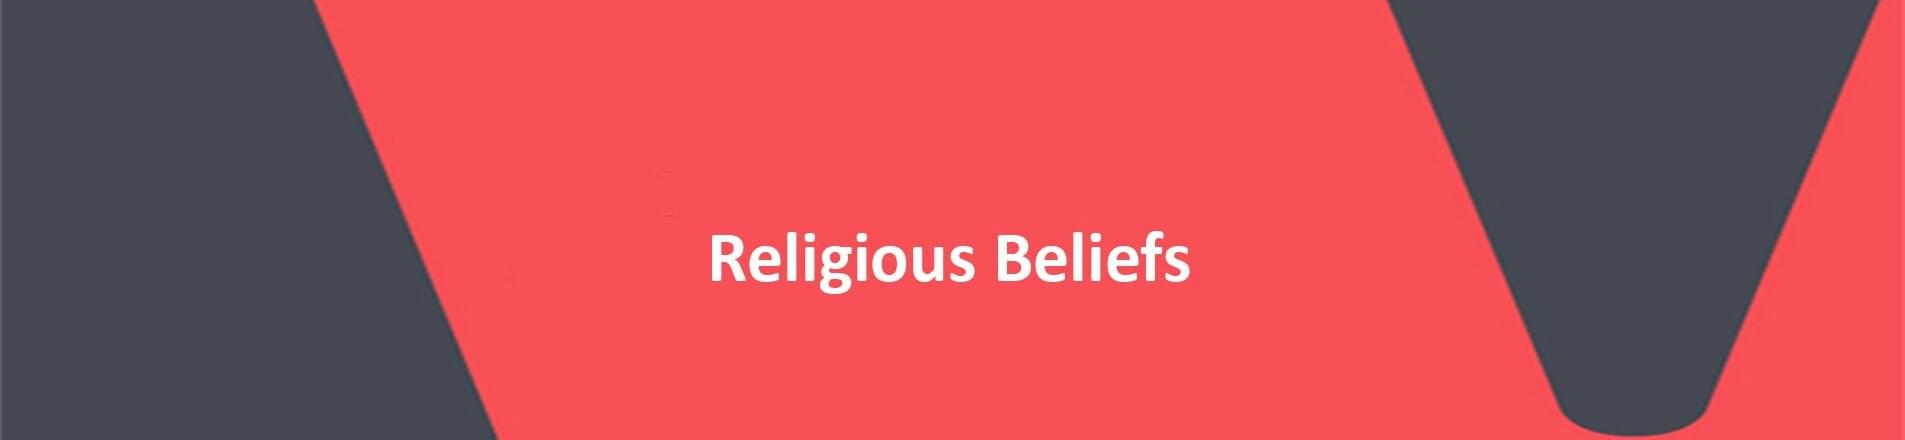 Red background with white text overlaid, spelling Religious Beliefs.